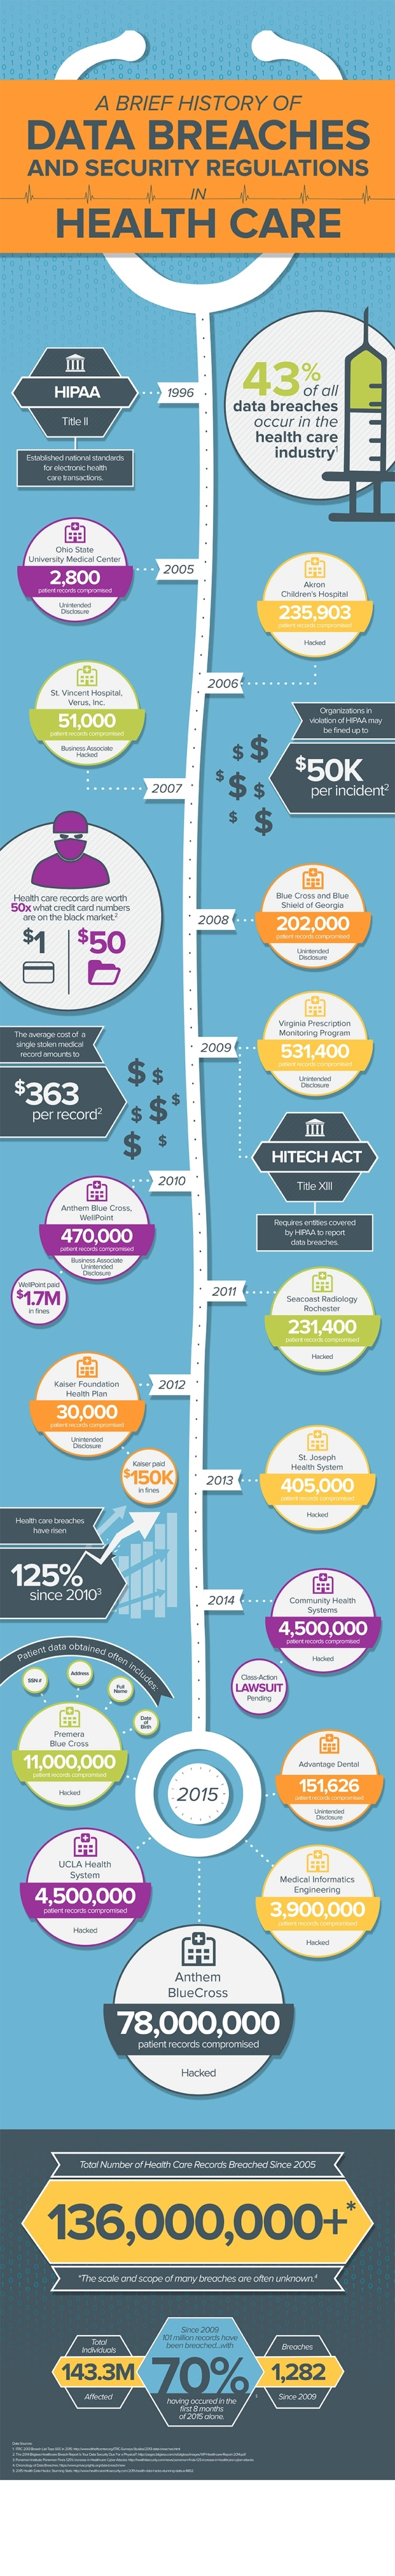 History-of-Health-Care-Data-Breaches-Infographic.jpg